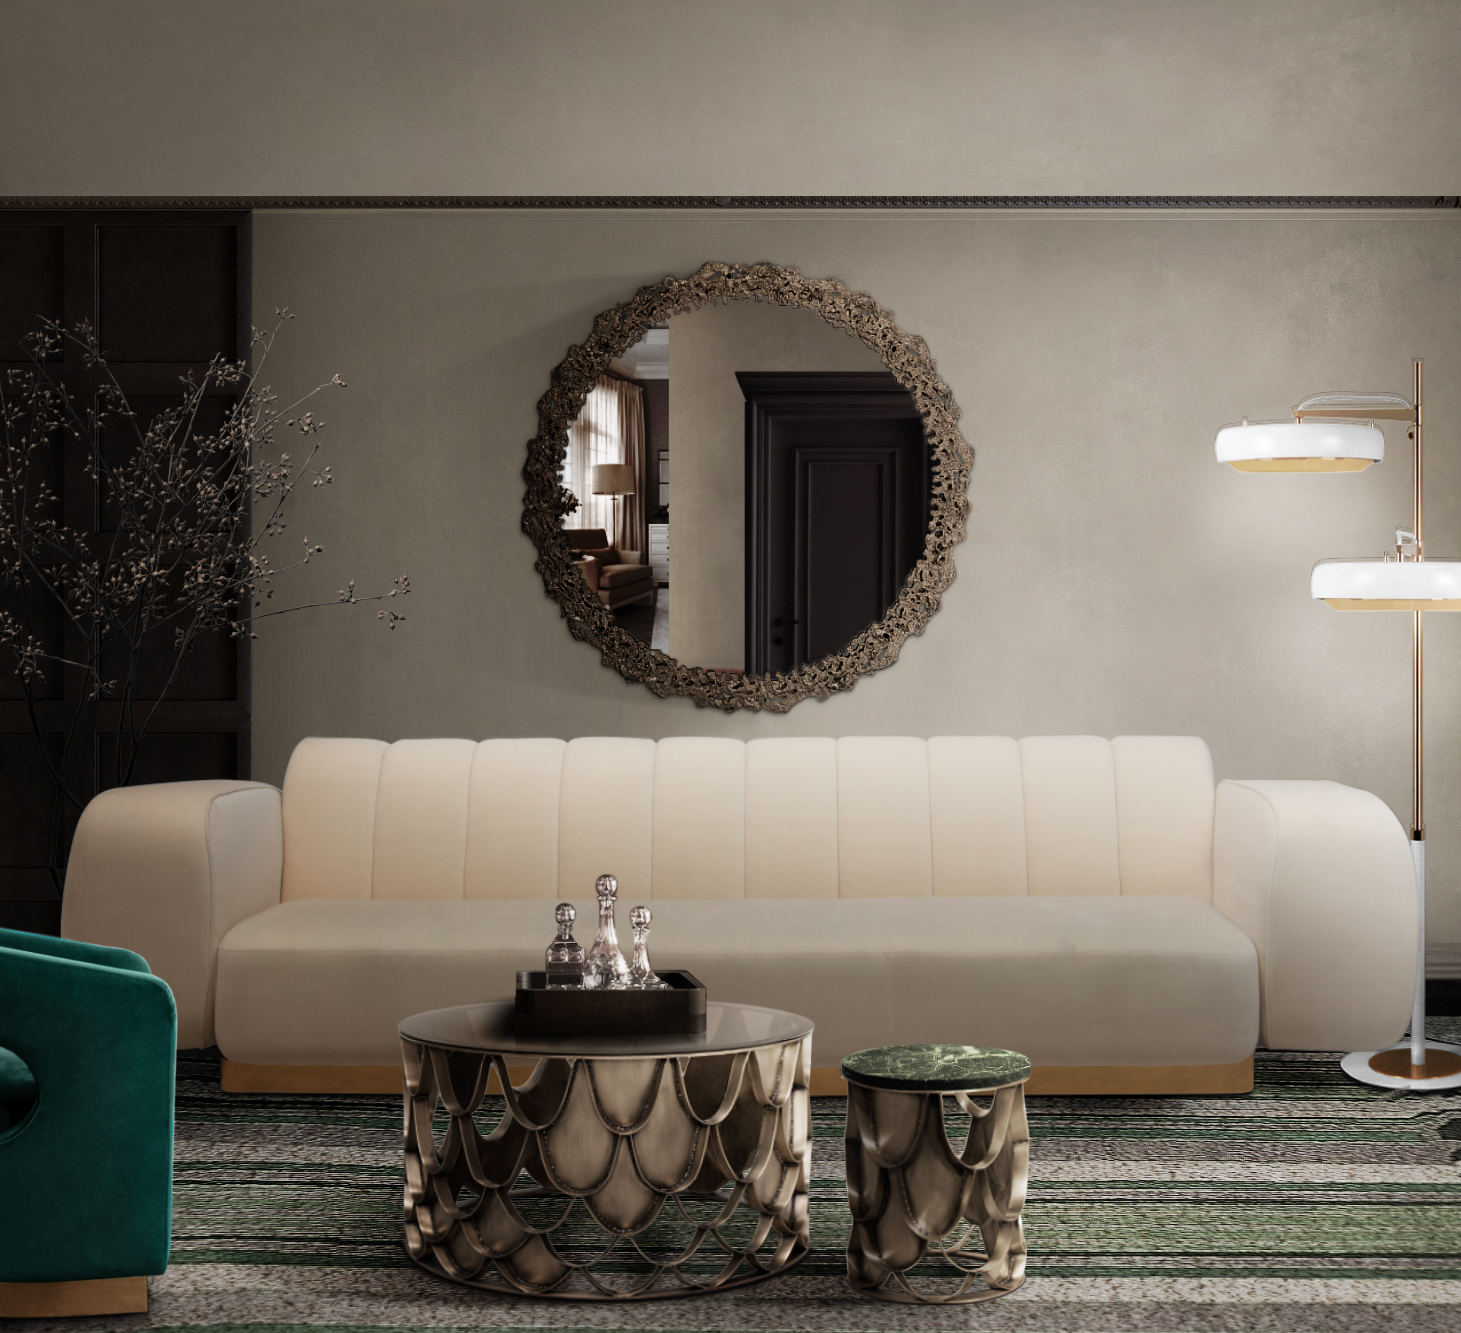 LIVING ROOM INTERIOR WITH MEMORABLE LIGHTING